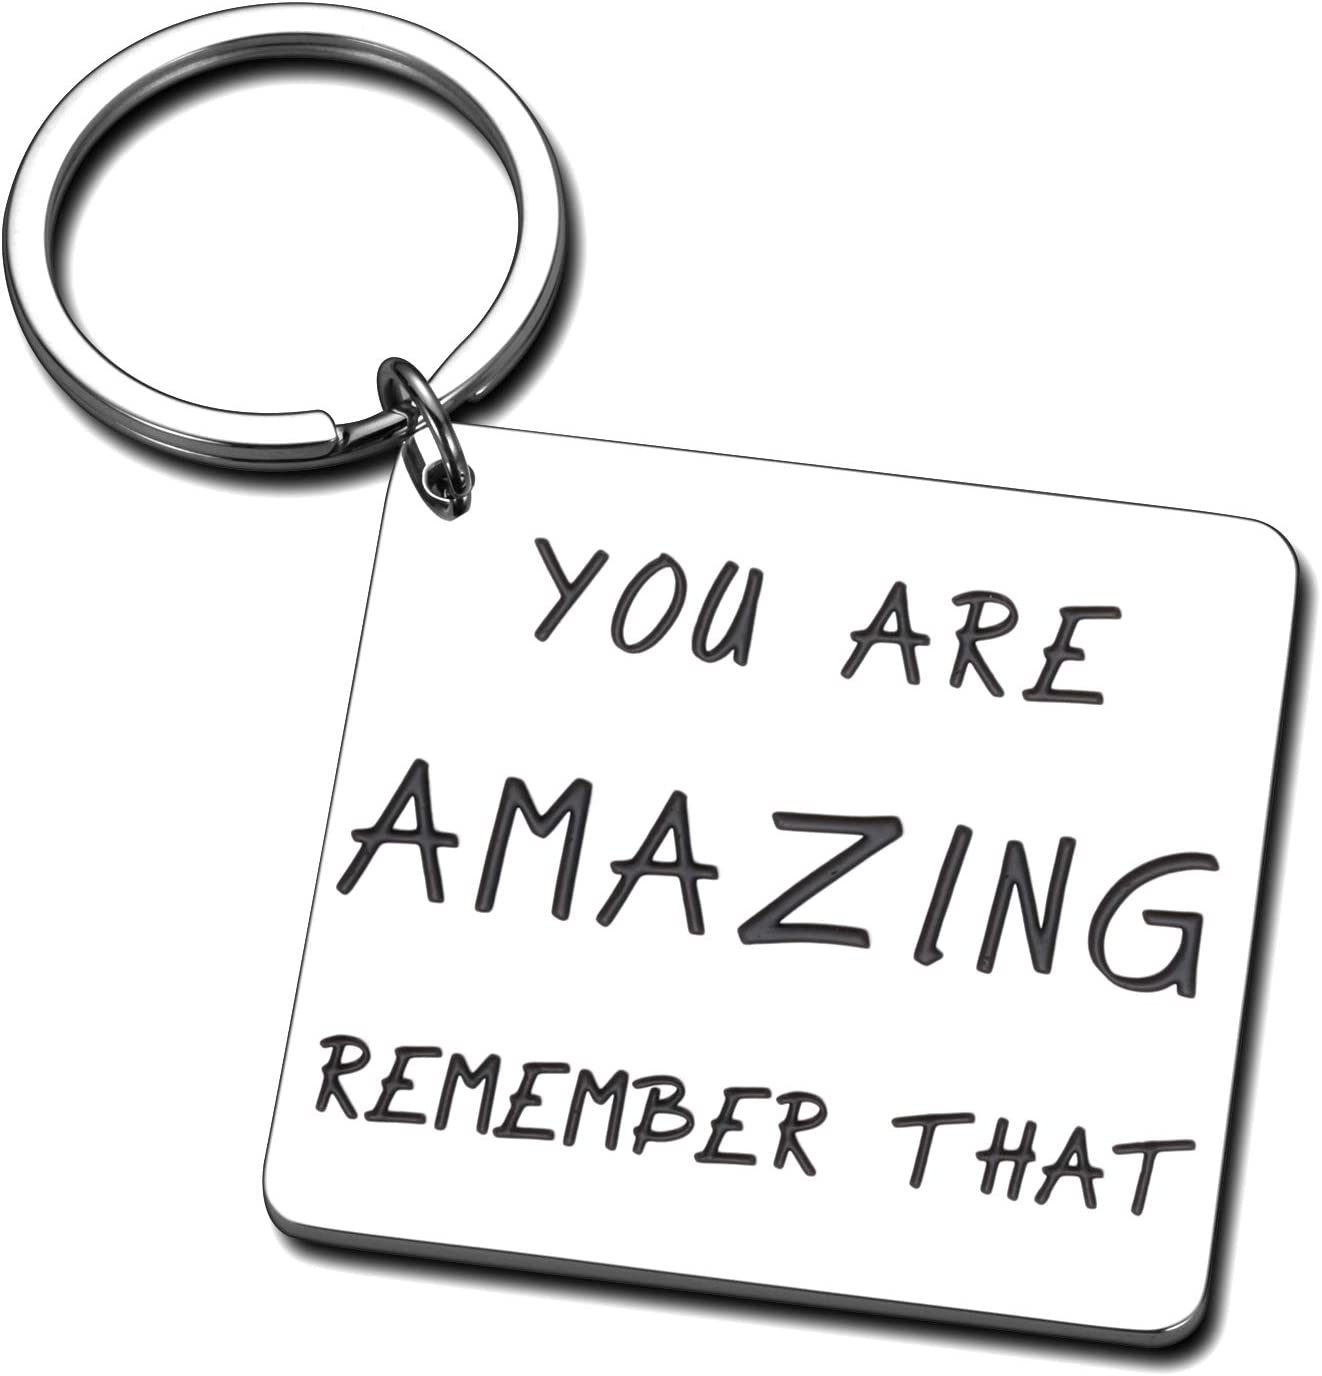 You are Amazing Remember That Inspirational Keychain Gifts for Teen Girl Boy Friend Coworker Teacher Appreciation Thank You Gift Women Men Daughter Mom Positive Saying Christmas Birthday Graduation